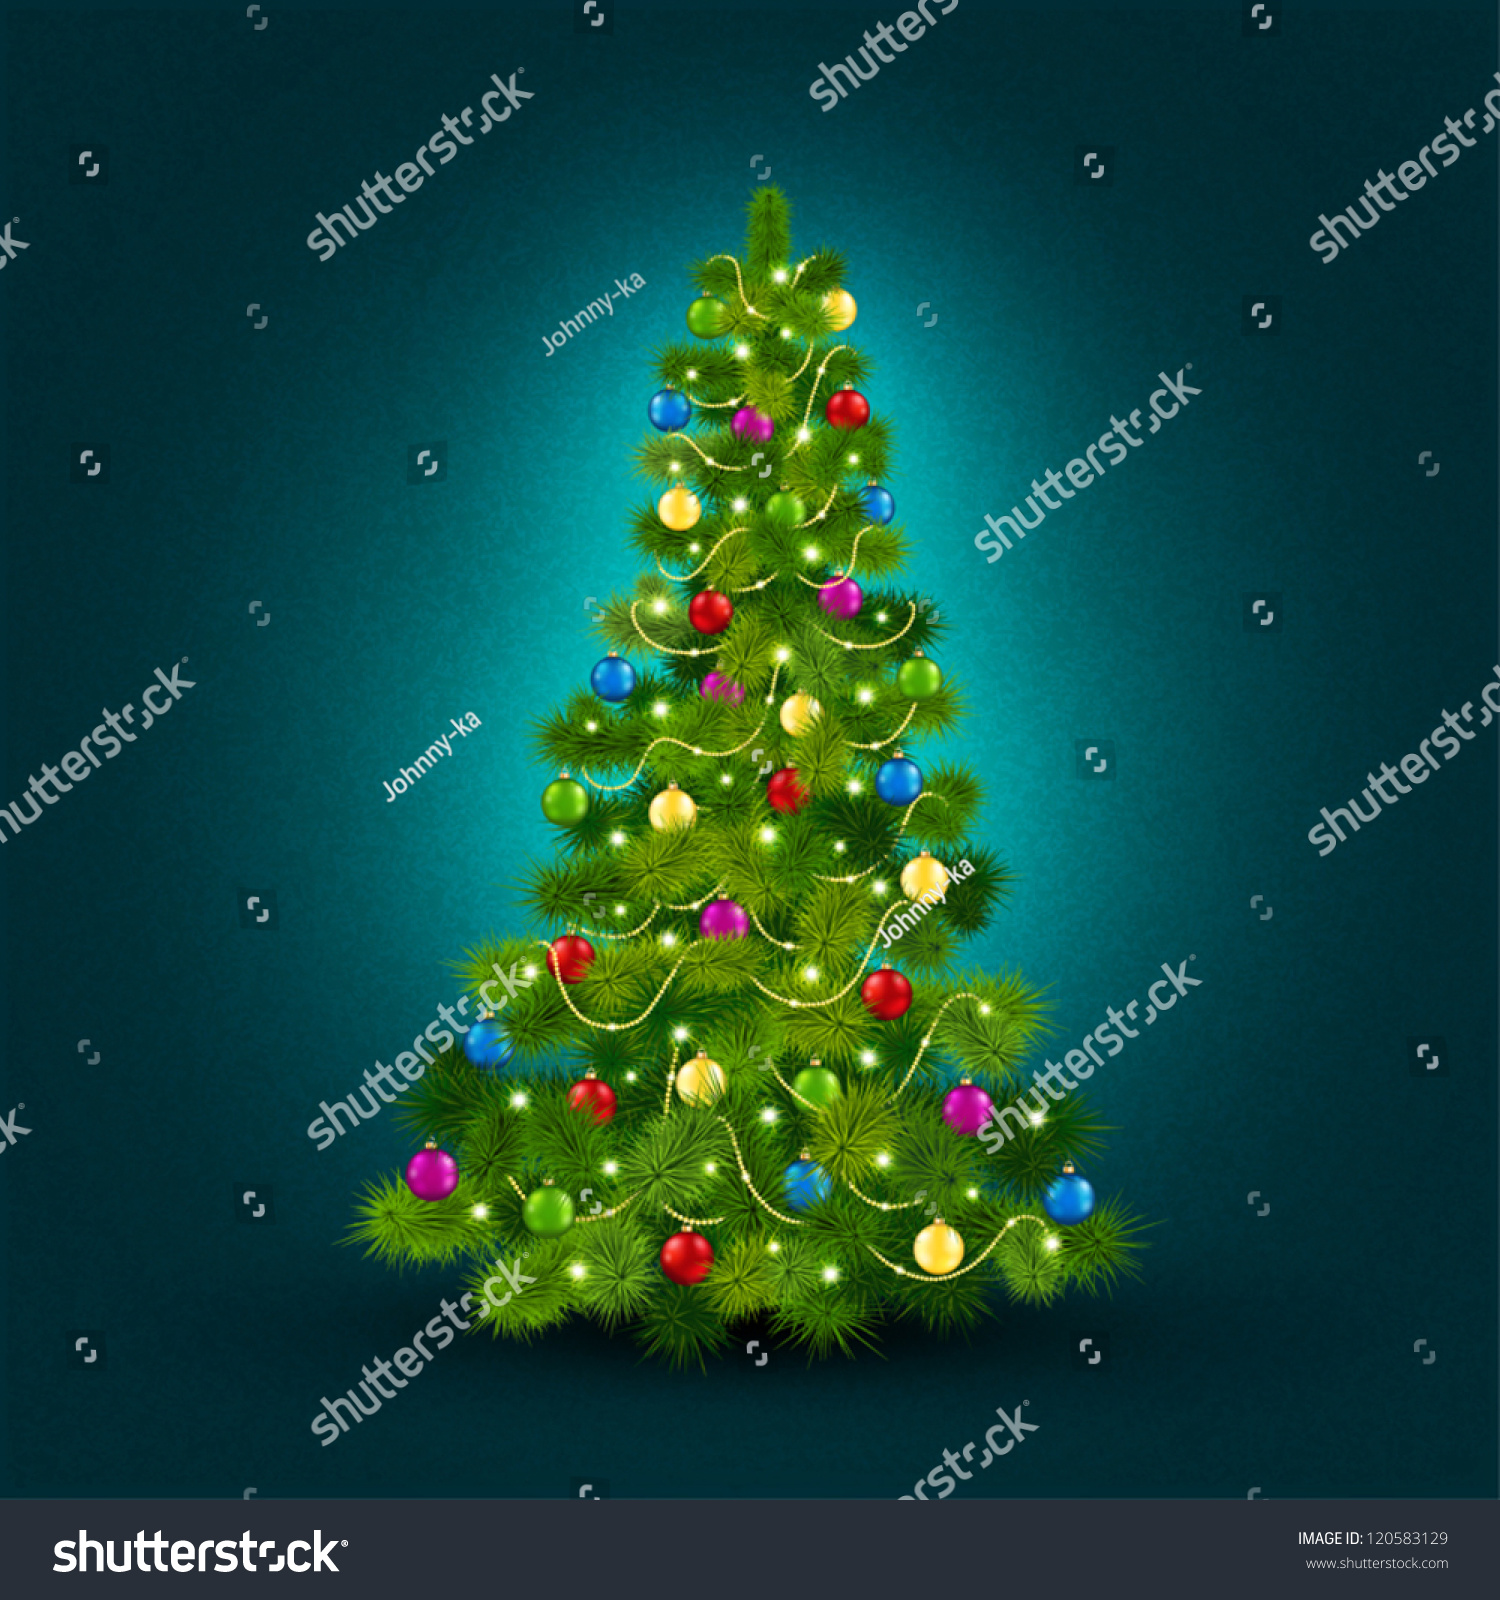 Vector illustration with a beautiful Christmas tree